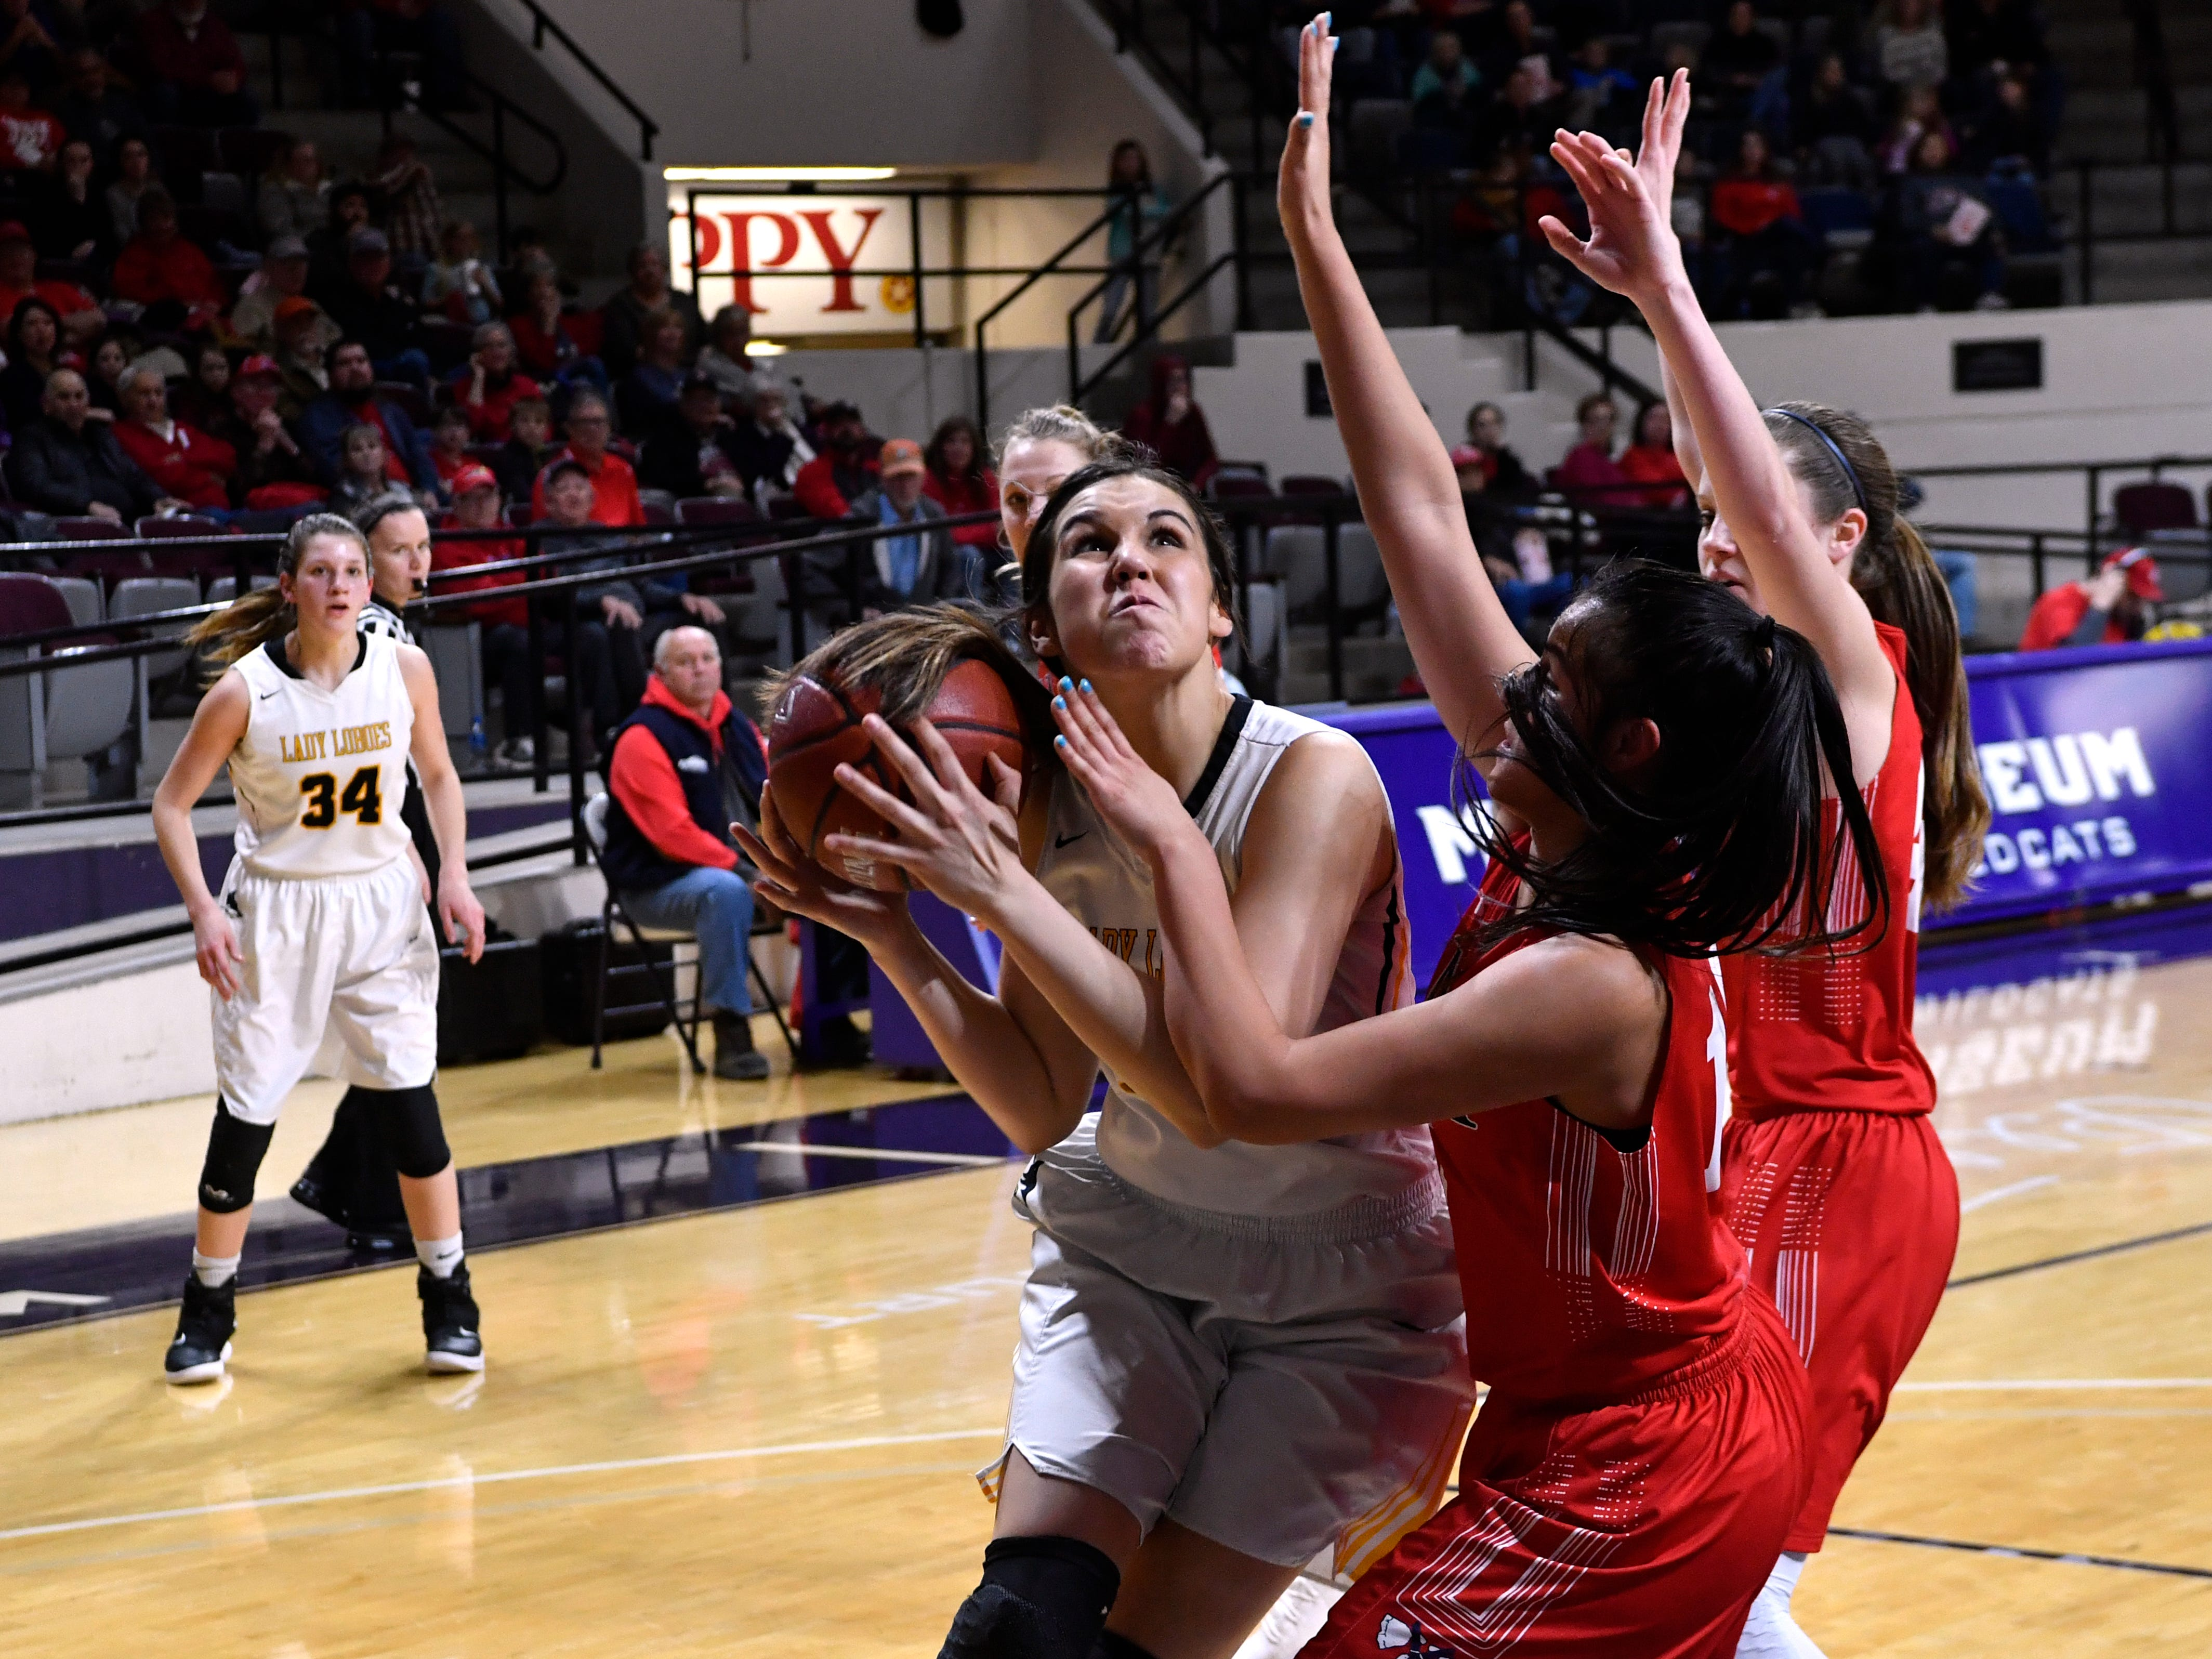 Cisco's Sophie Hurtado shoulders the Jim Ned defense as she goes up for a basket during Tuesday's Region 1 3A basketball all quarter-finals at Abilene Christian University Feb. 19, 2019. Final score was 46-31, Jim Ned.